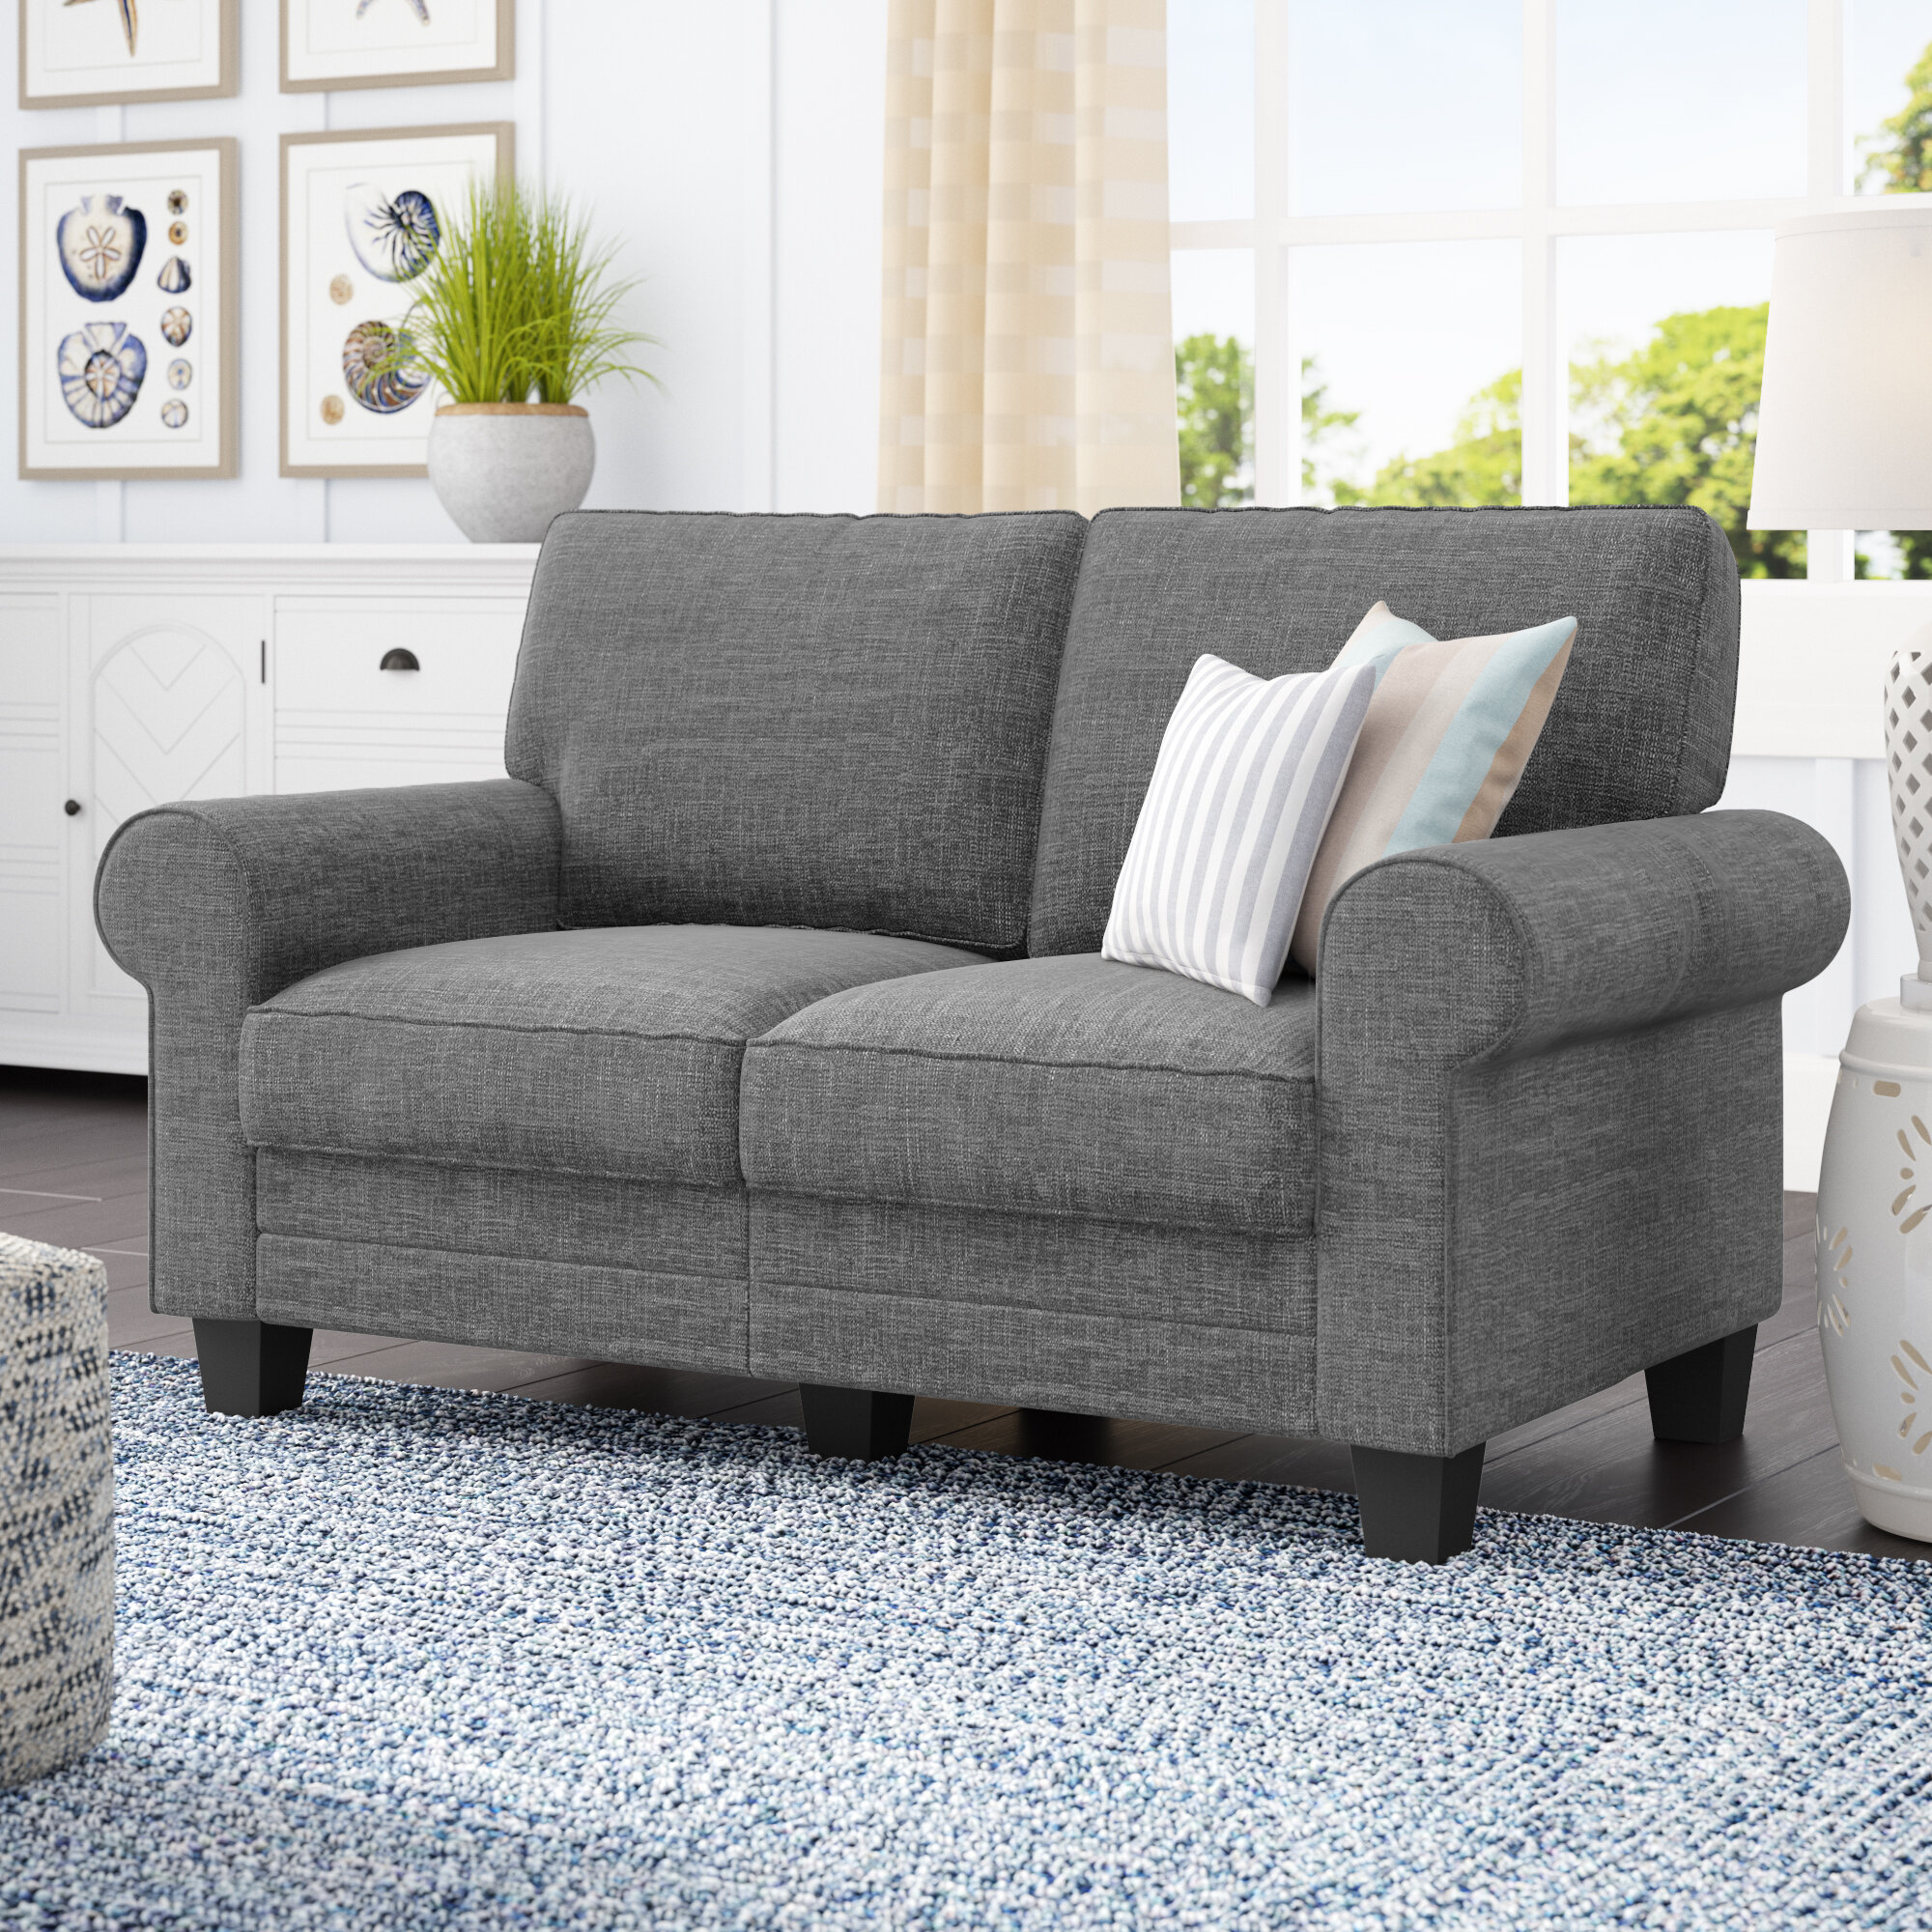 home sleeper img chair decor friendly seat bed out homcom fold loveseat lounging sofa with eco fabric convertible wheels